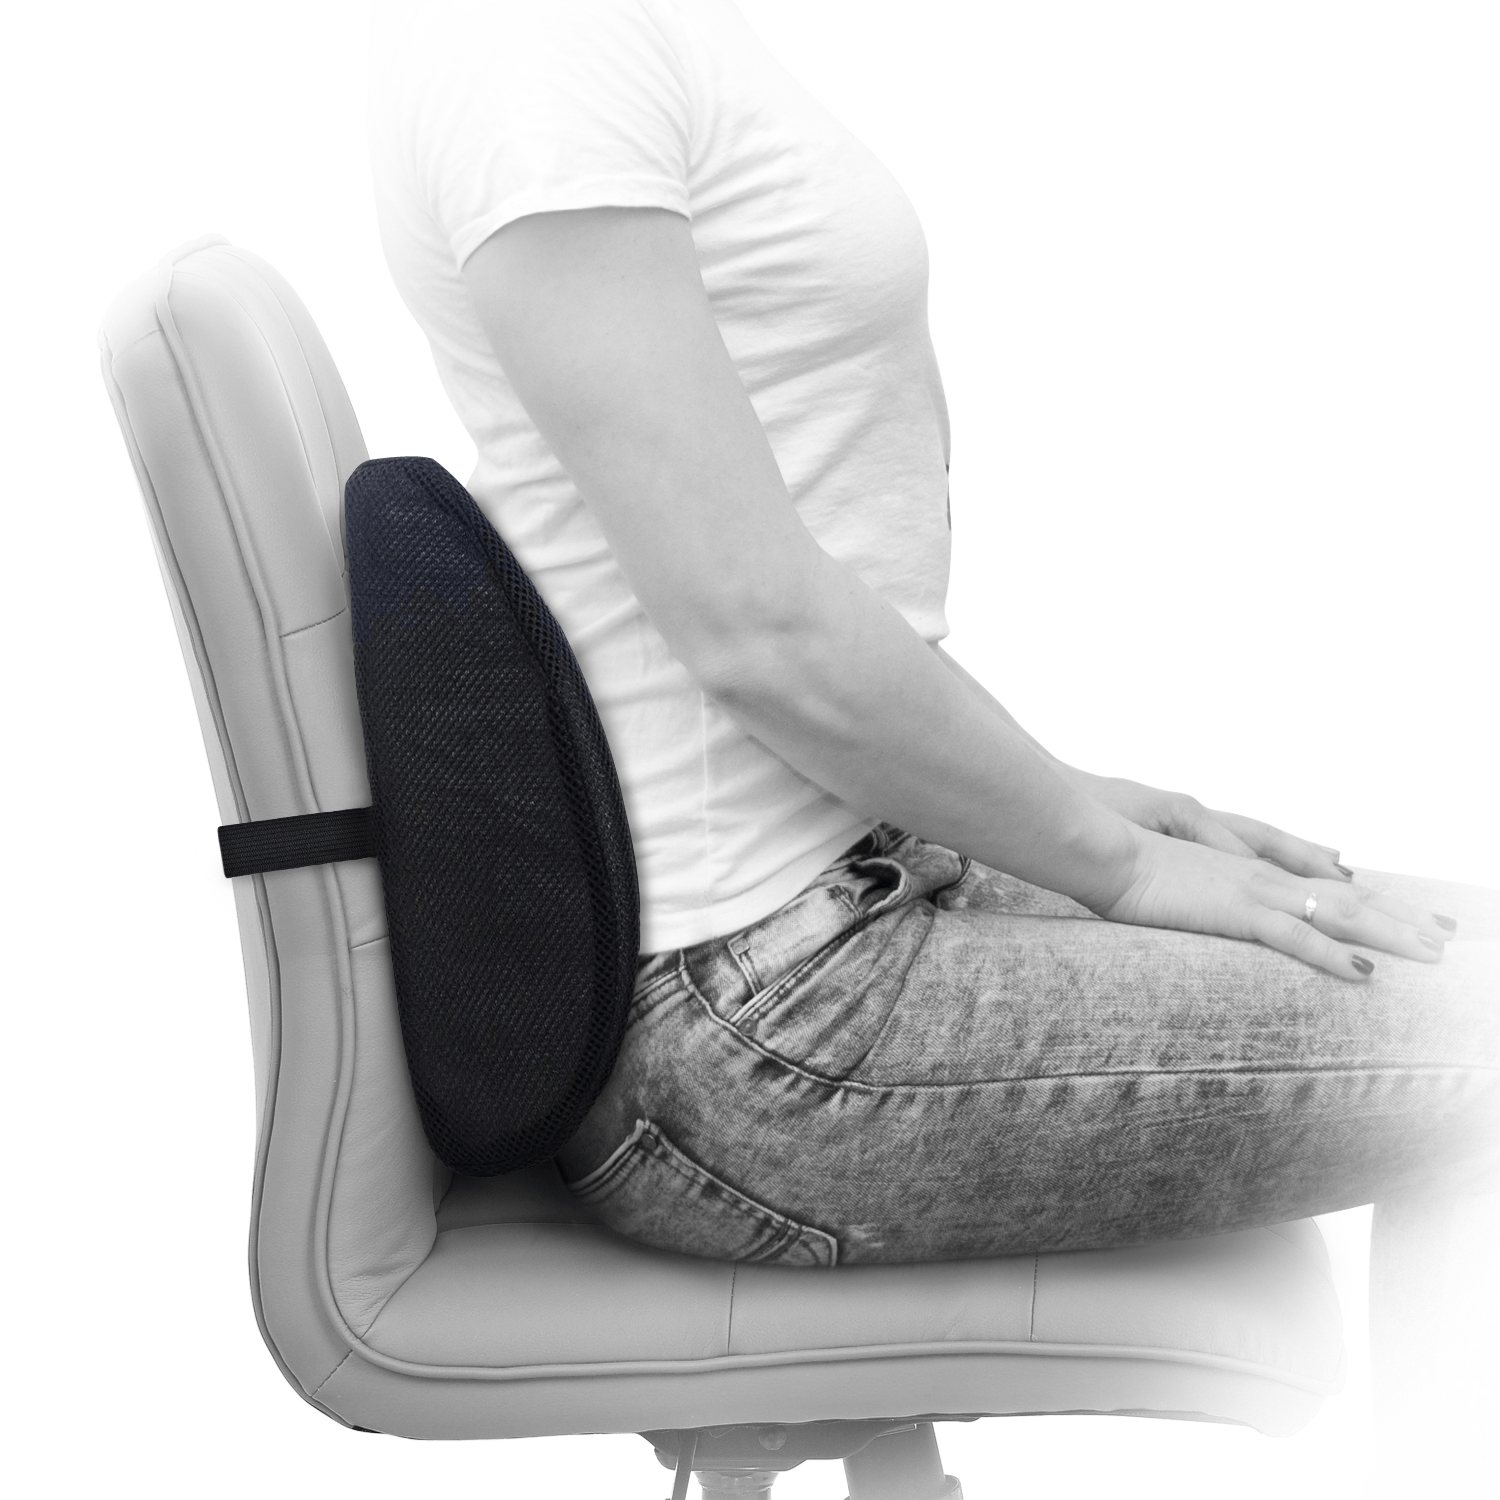 Lumbar Support Pillow For Chair Memory Foam Lumbar Support Pillow Milliard Bedding The